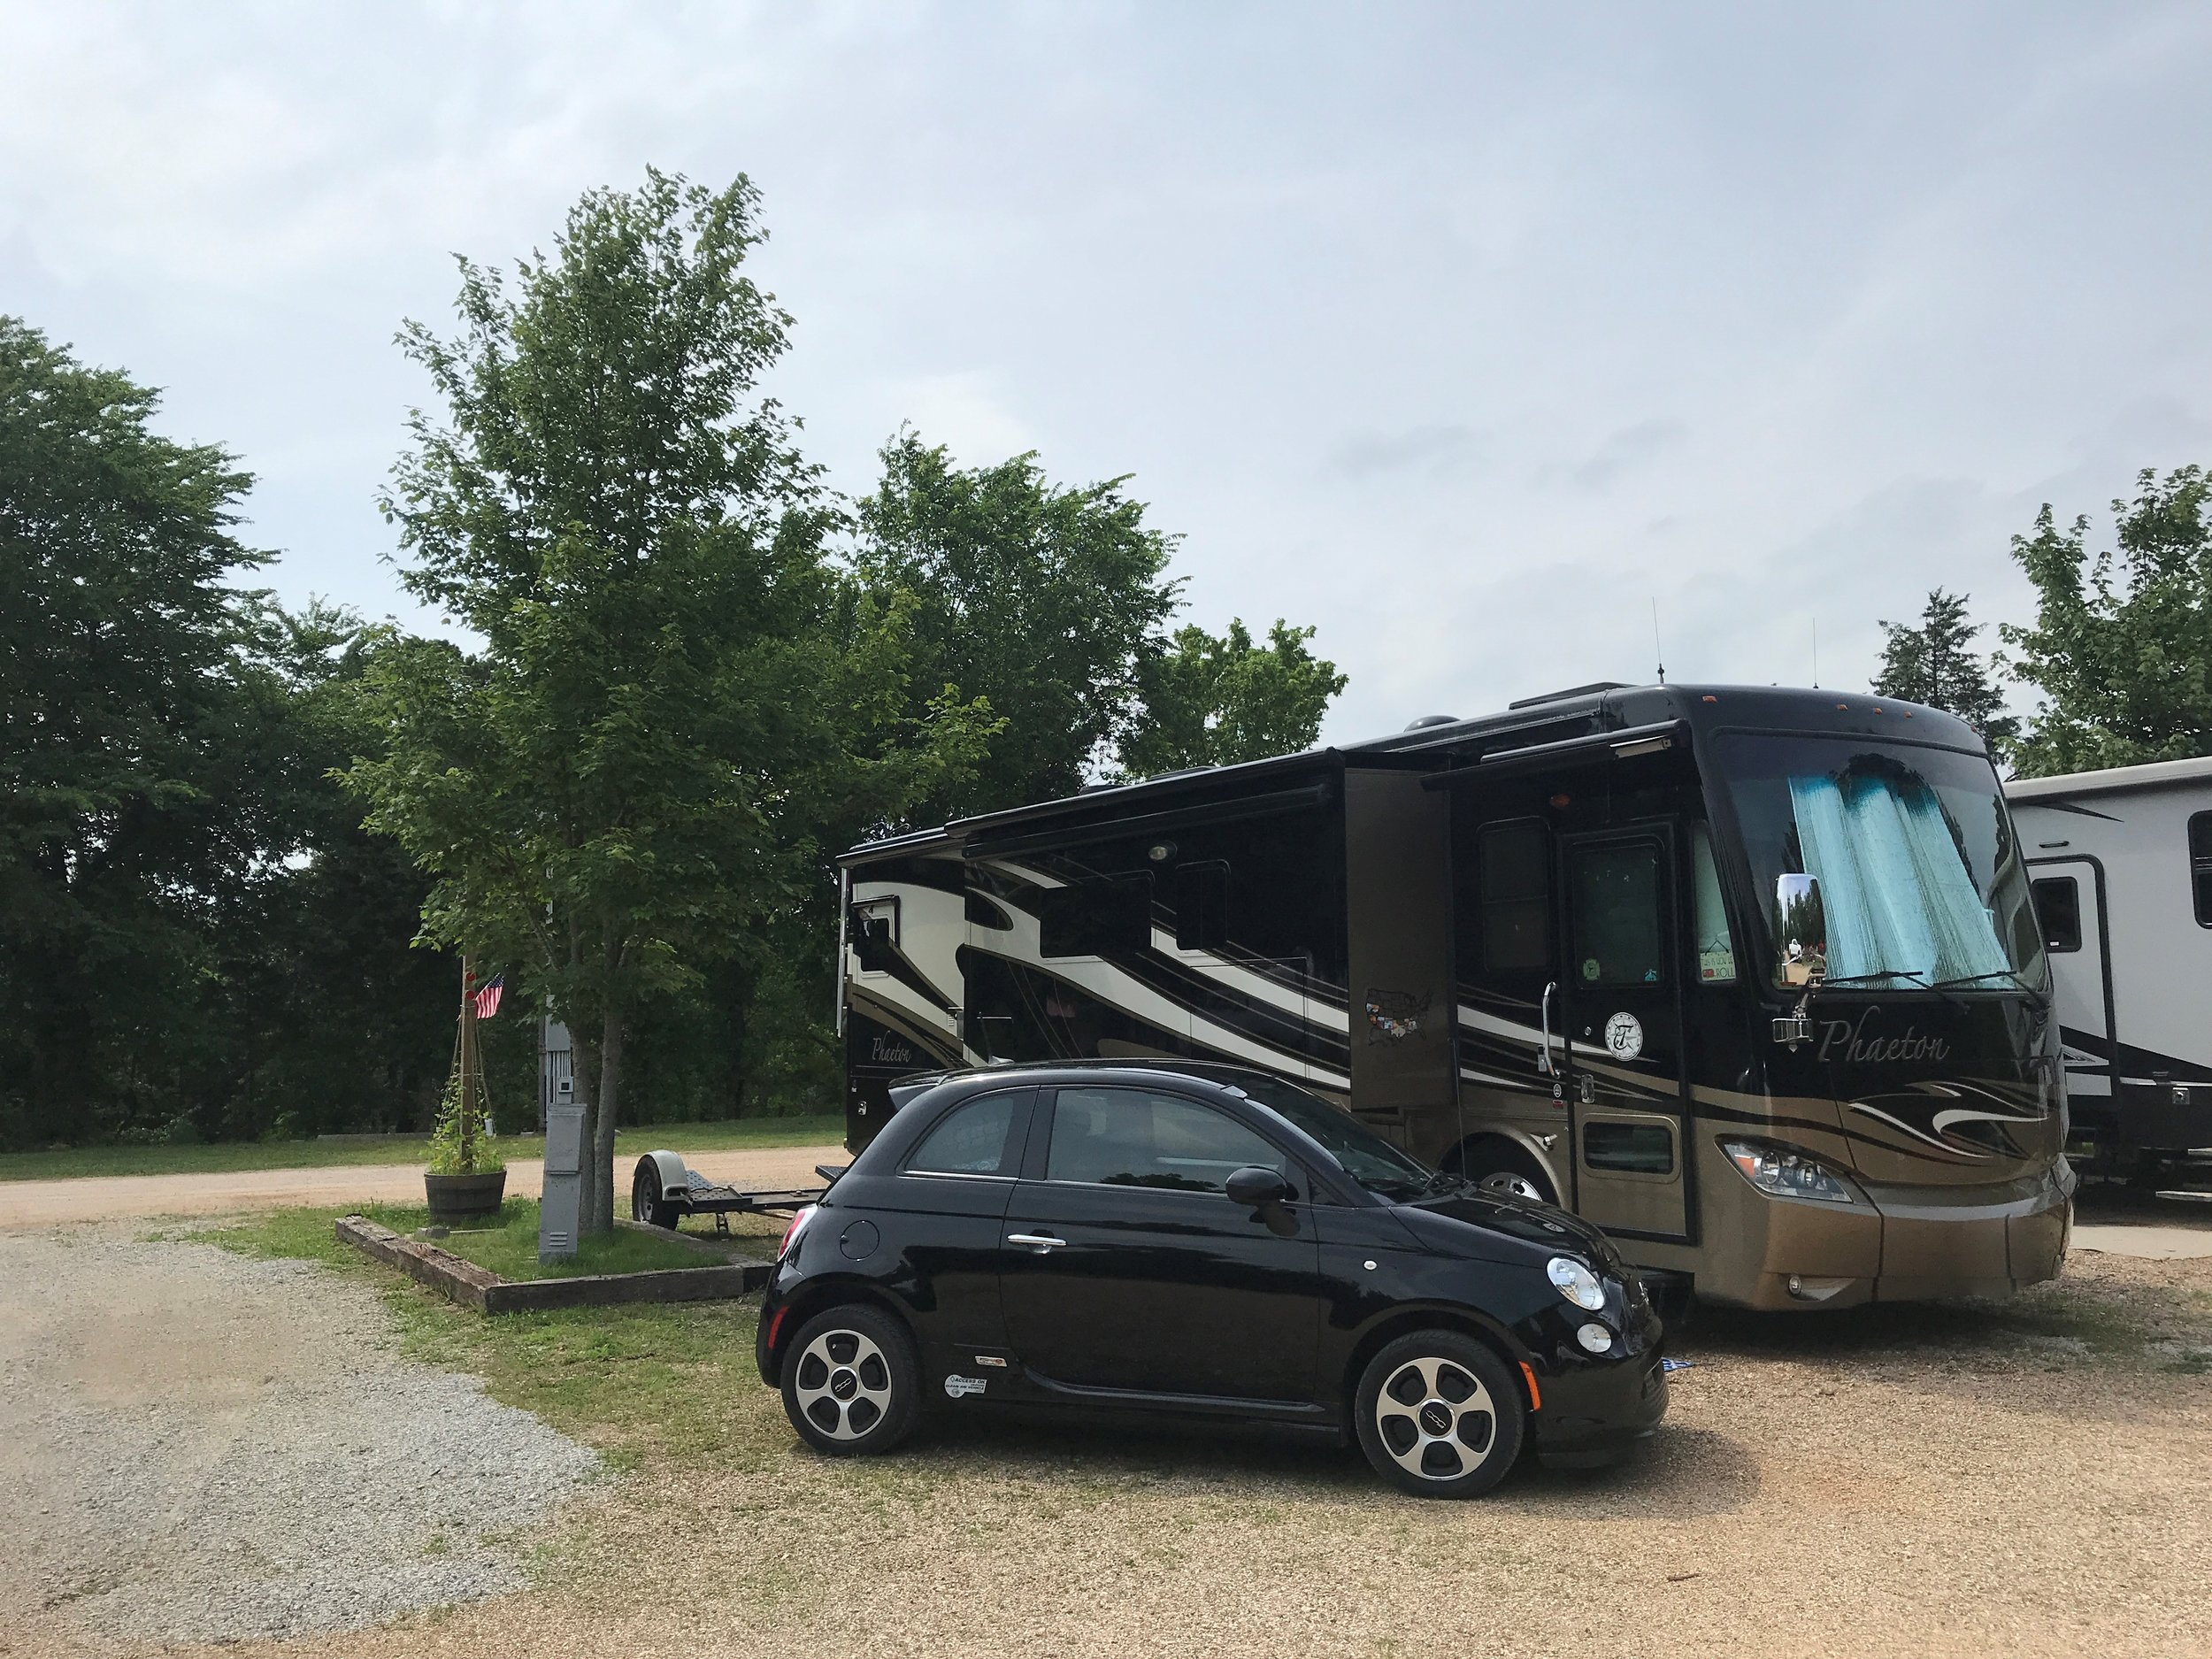 Our spot at Green Tree RV & Campground, vehicles freshly washed